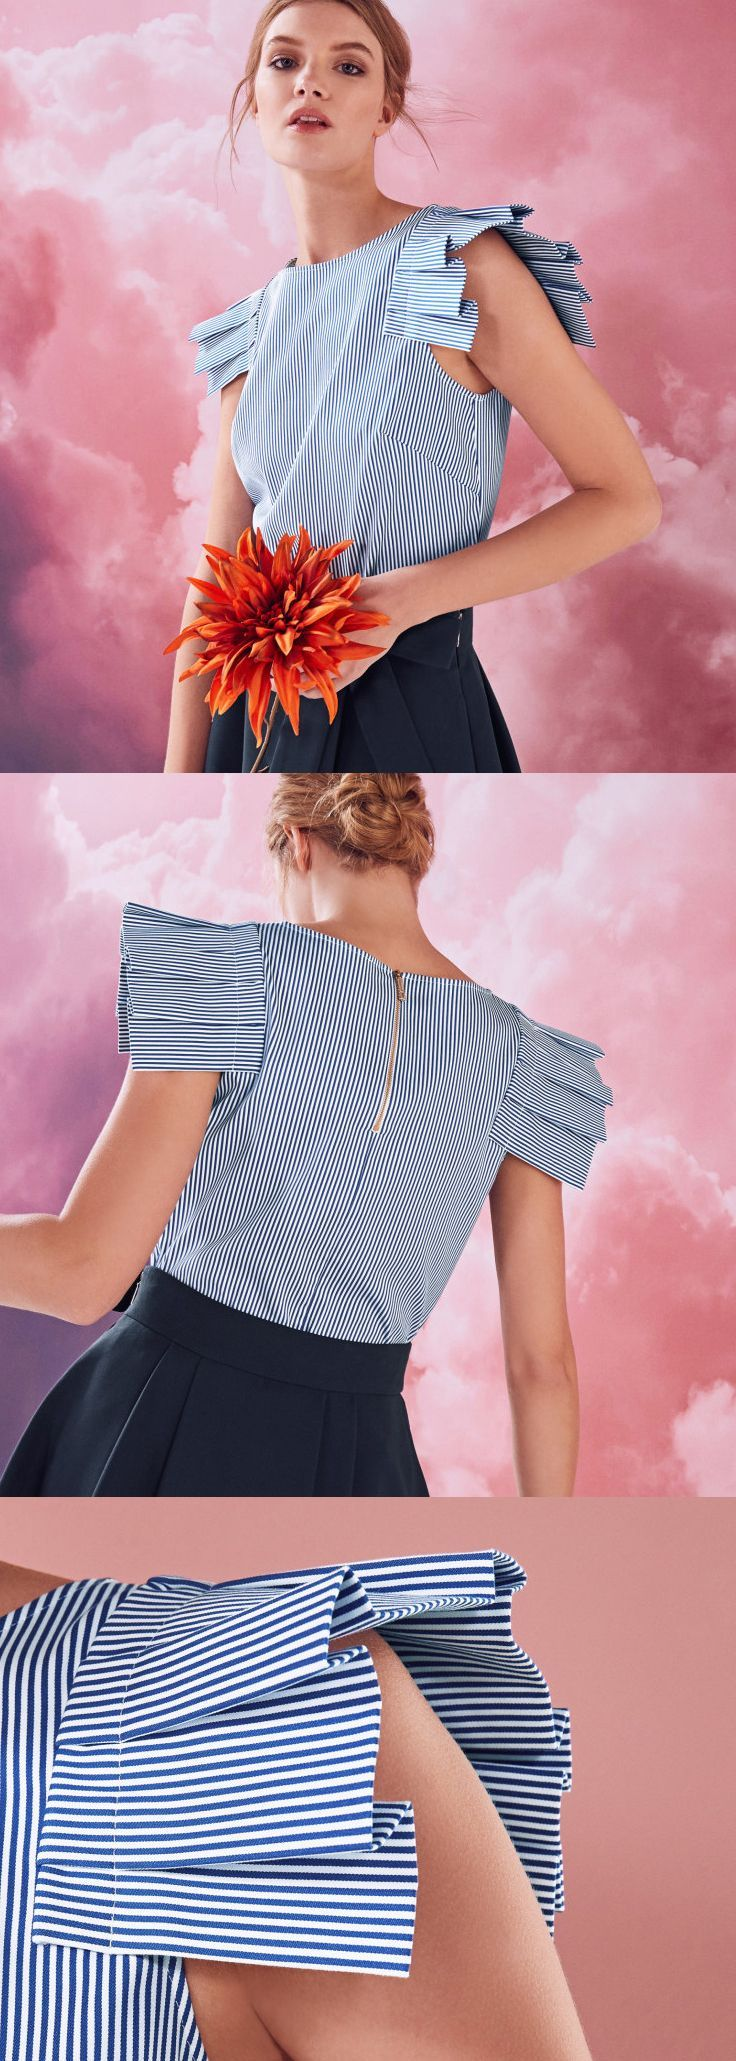 Ted Baker - Striped frilled shoulder cotton-blend top. Watch your new season dressing come into line with the AMELLA top. Softly structured in a cotton-rich fabric, this effortlessly feminine piece is defined by its ruffled sleeves and intricately striped finish. Statement Sleeves, Striped Blouse. Deconstructed fashion ideas, outfit inspiration. Formal Office Work Wear. #fashion #fashionista #outfits #affiliatelink #pinspiration